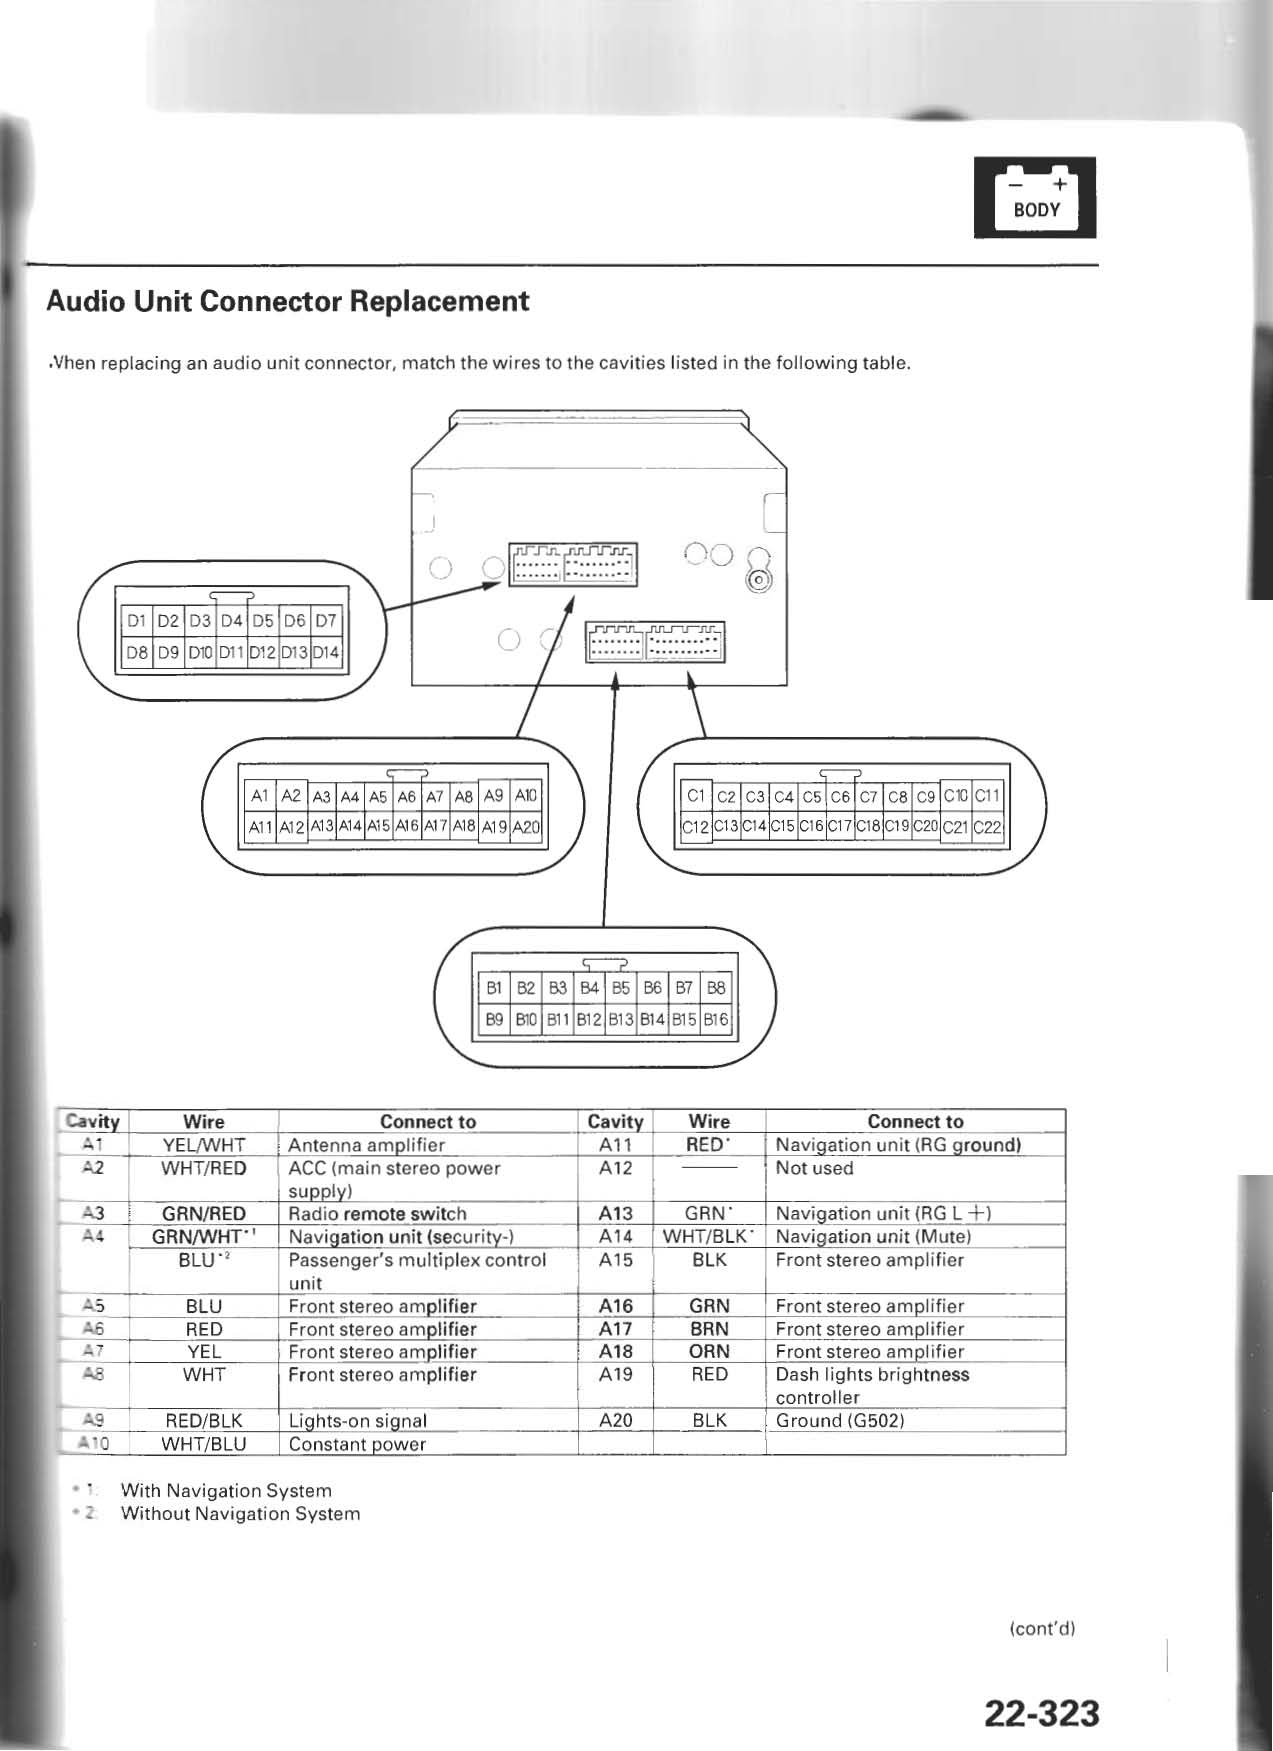 30384d1111169775 retrofit 01 04 mdx w bluetooth outs 2003 mdx radio retrofit 01 04 mdx w bluetooth page 2 acura mdx forum acura 2005 acura tl amp wiring diagram at gsmx.co